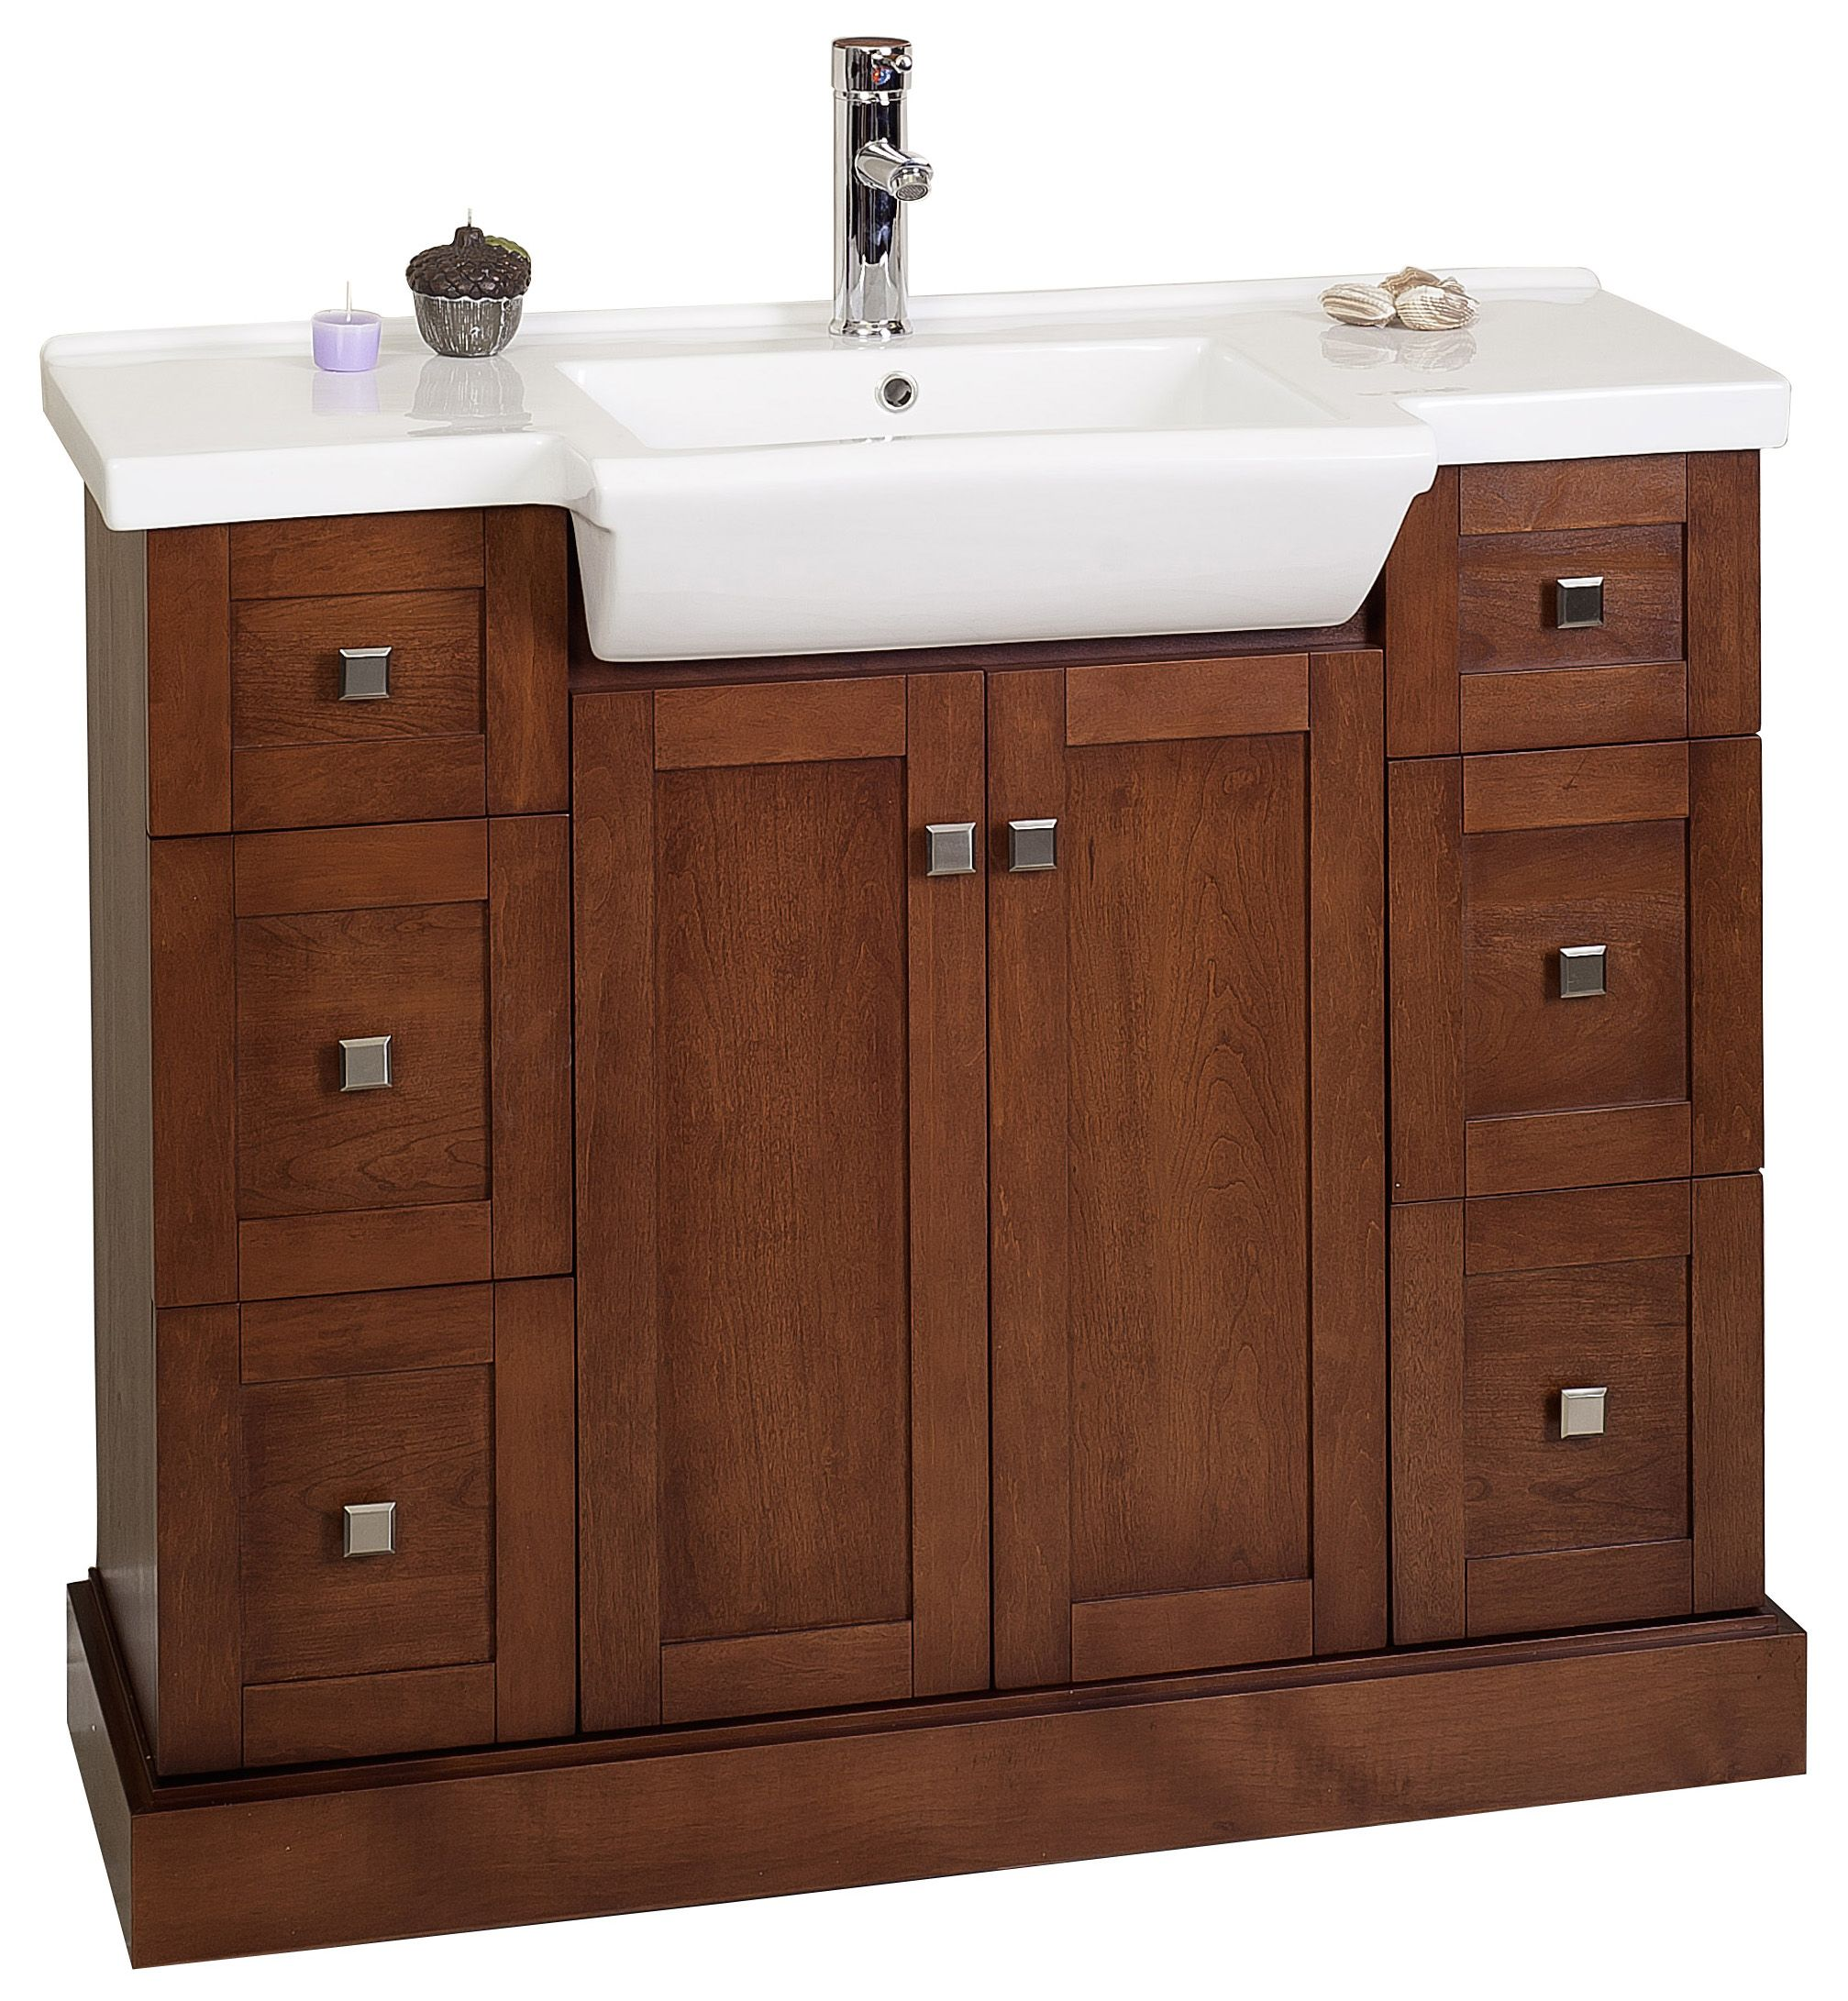 choosing makeup and garden vanity area with sink home single